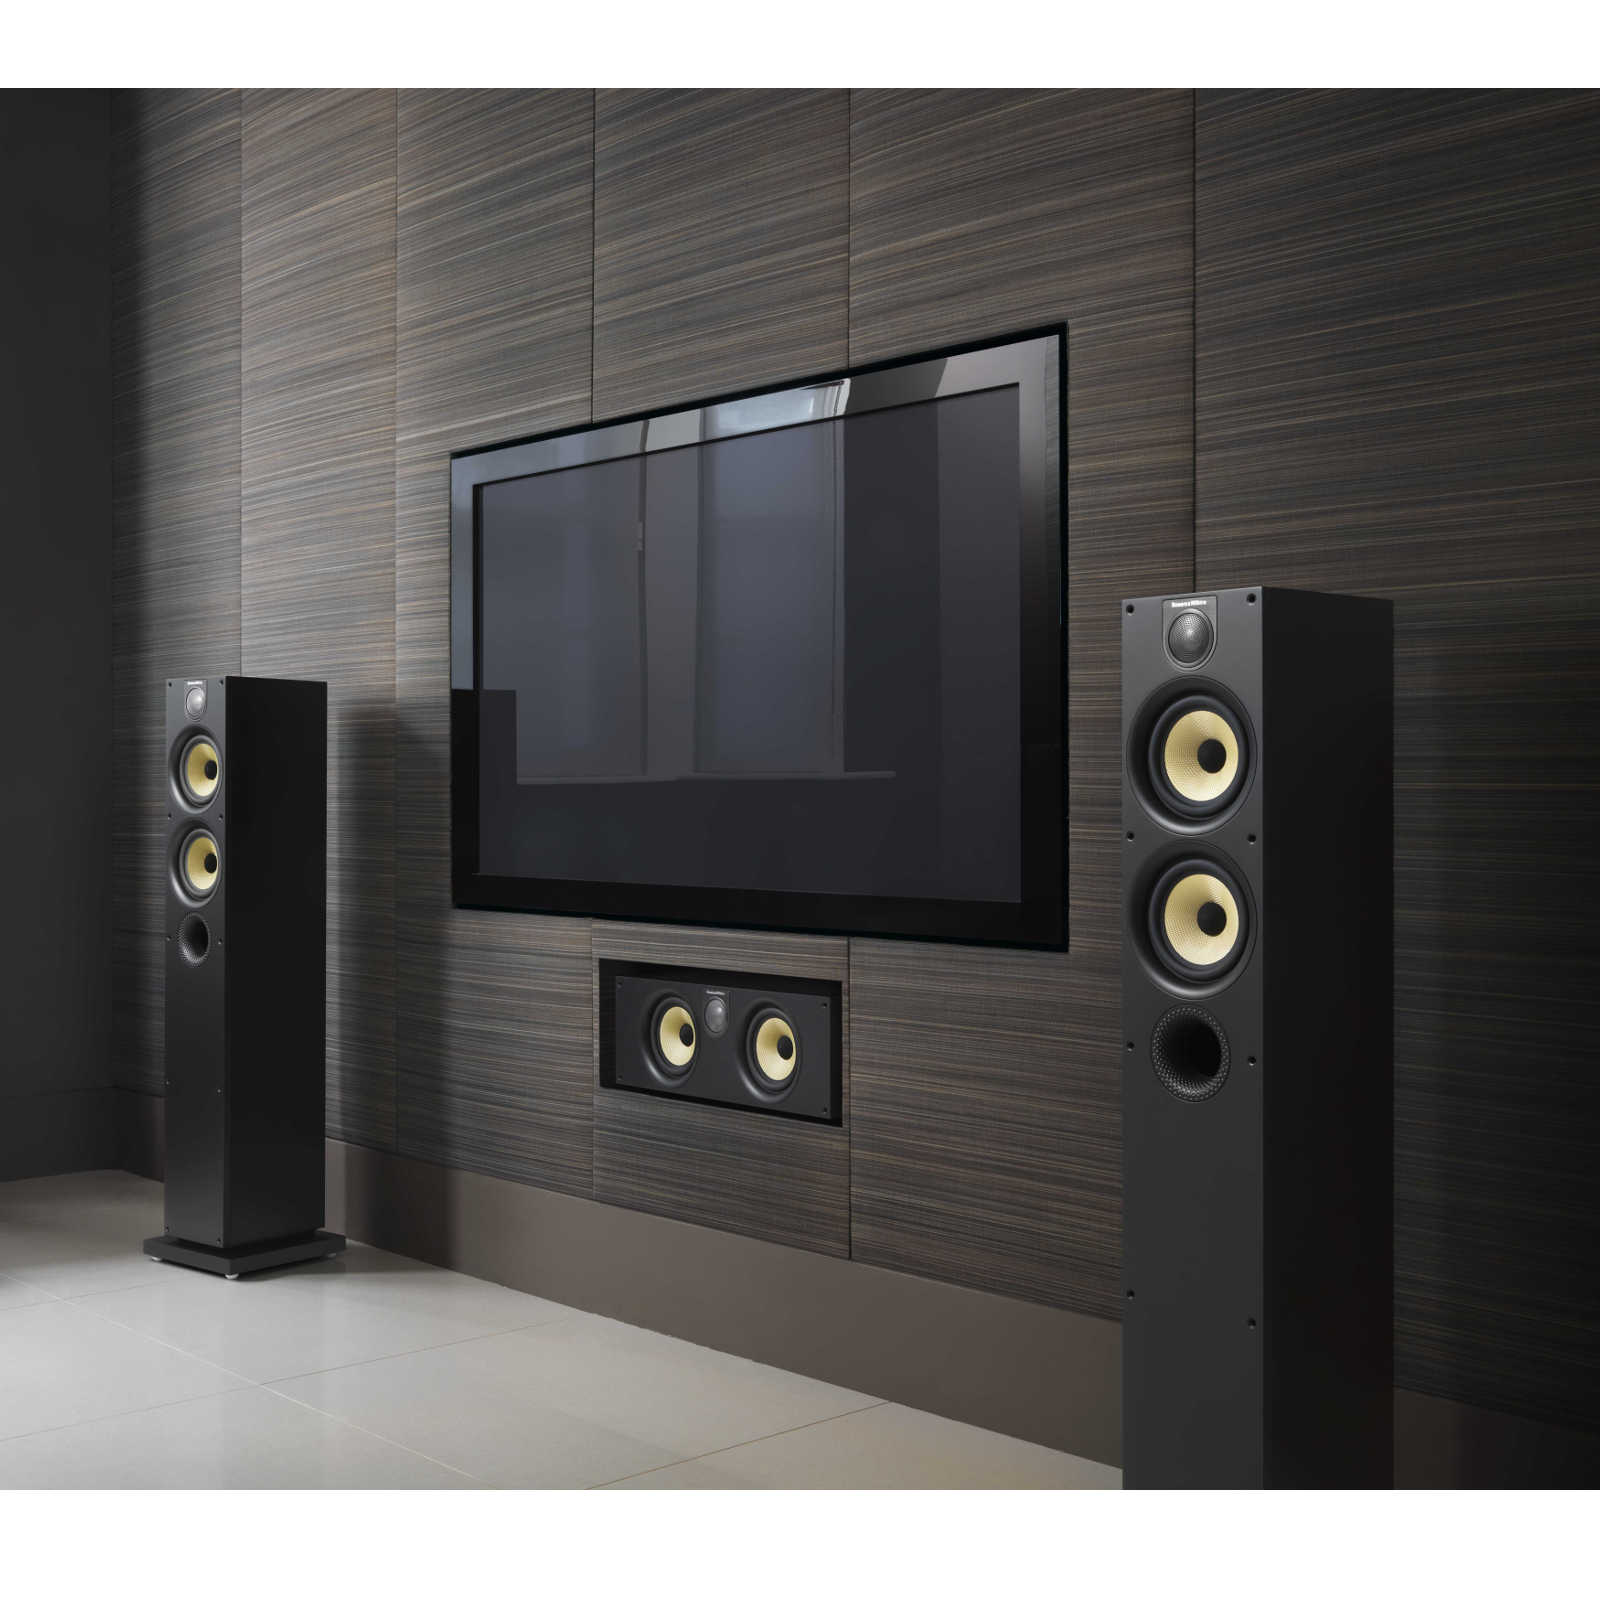 B w htm62 s2 black ash enceintes hifi bowers wilkins - Meuble tv barre de son integree ...